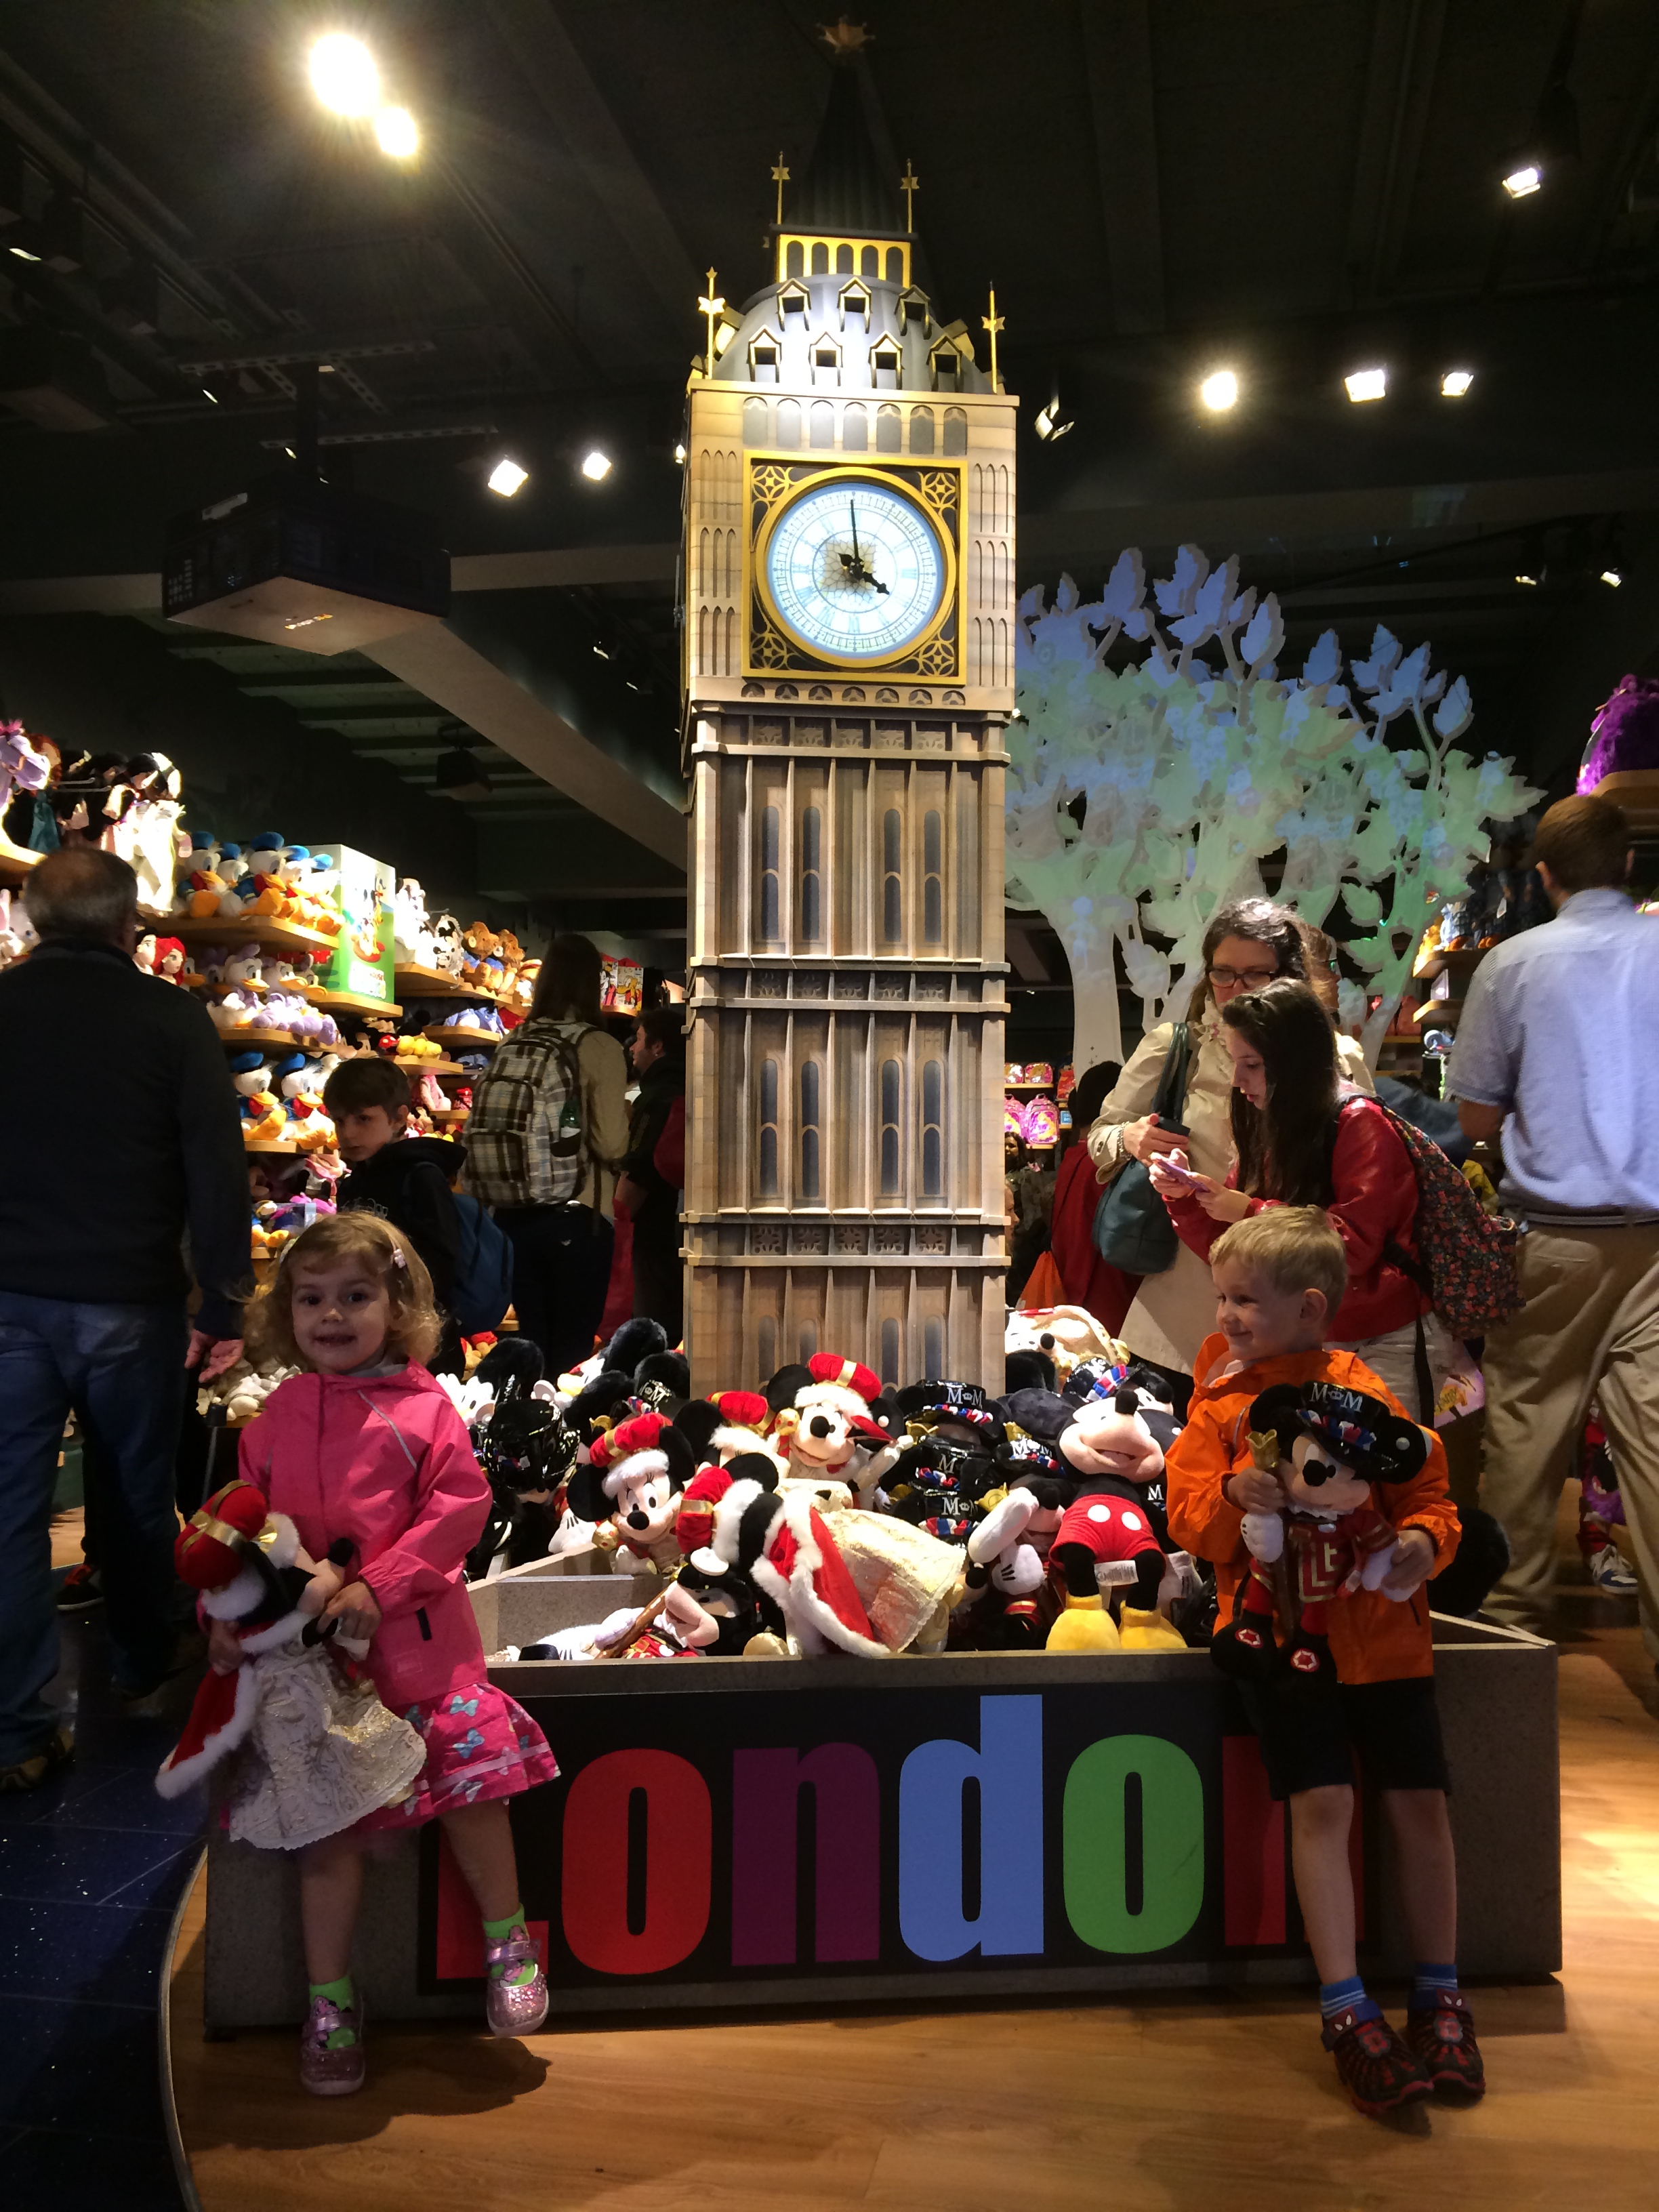 Oxford Street Disney Store